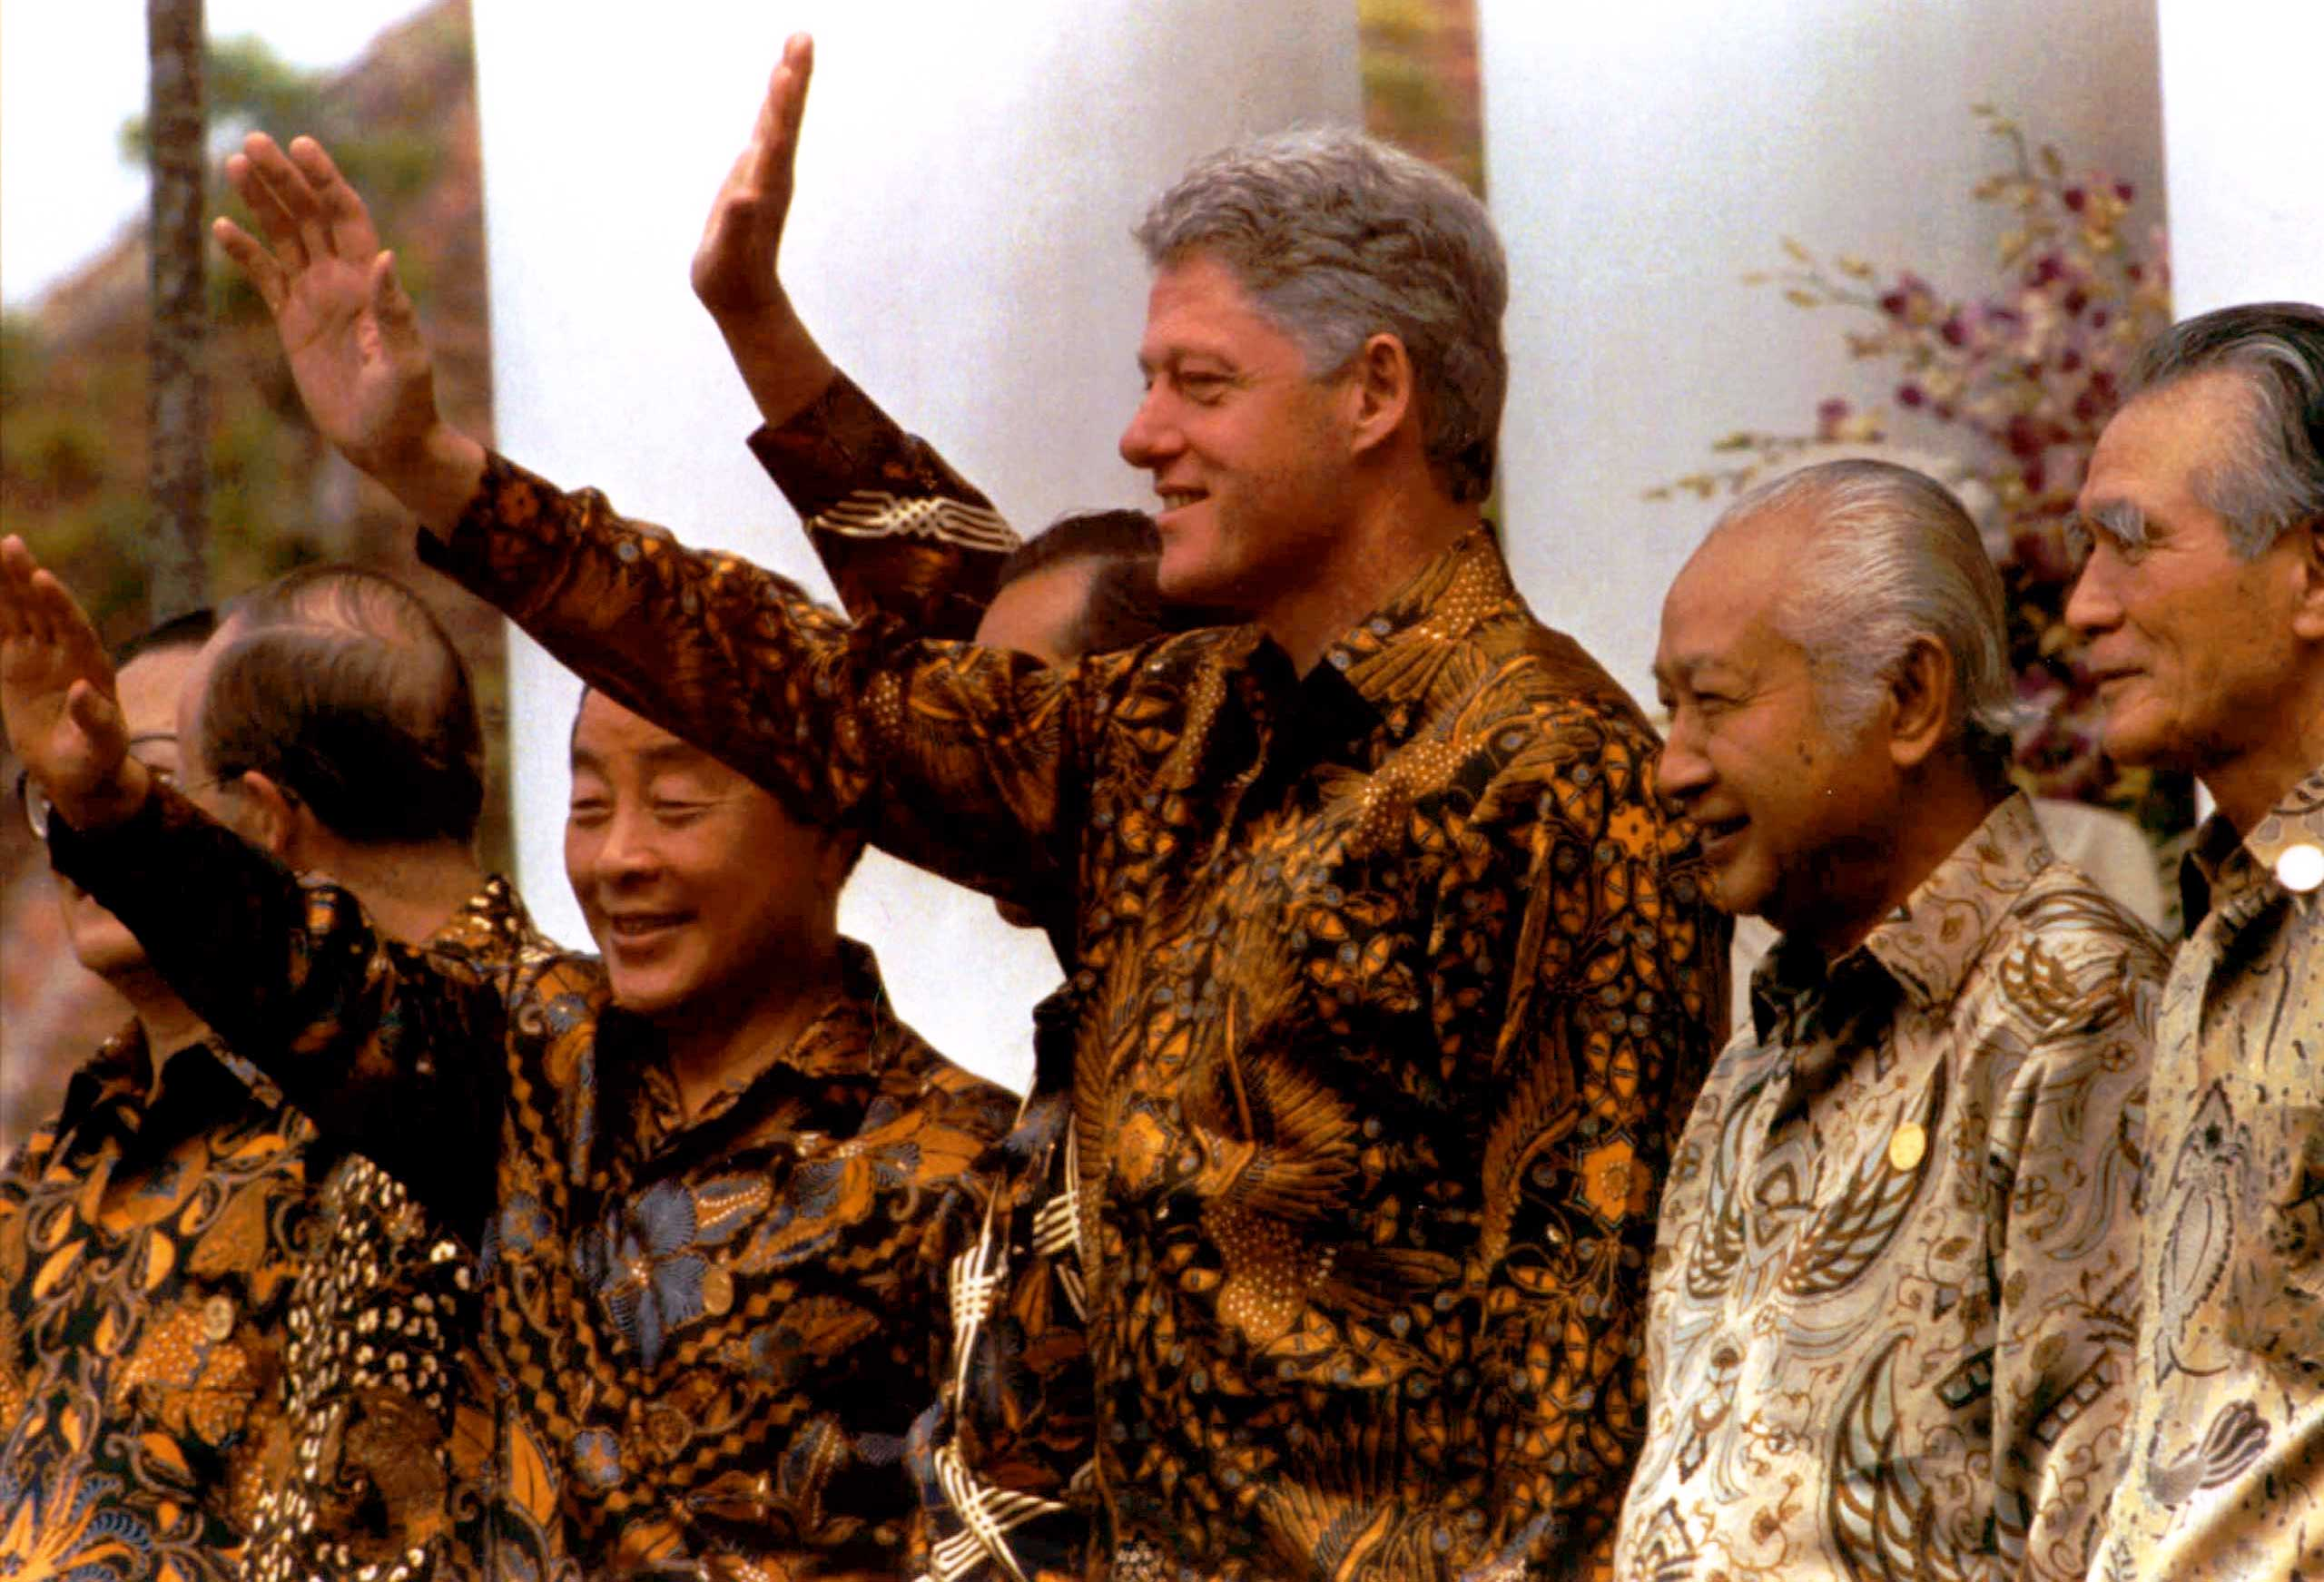 Wearing traditional Indonesian batik clothing, Asia-Pacific Economic Cooperation (APEC) leaders wave during a photo session prior to their meeting in Bogor, Indonesia in 1994.